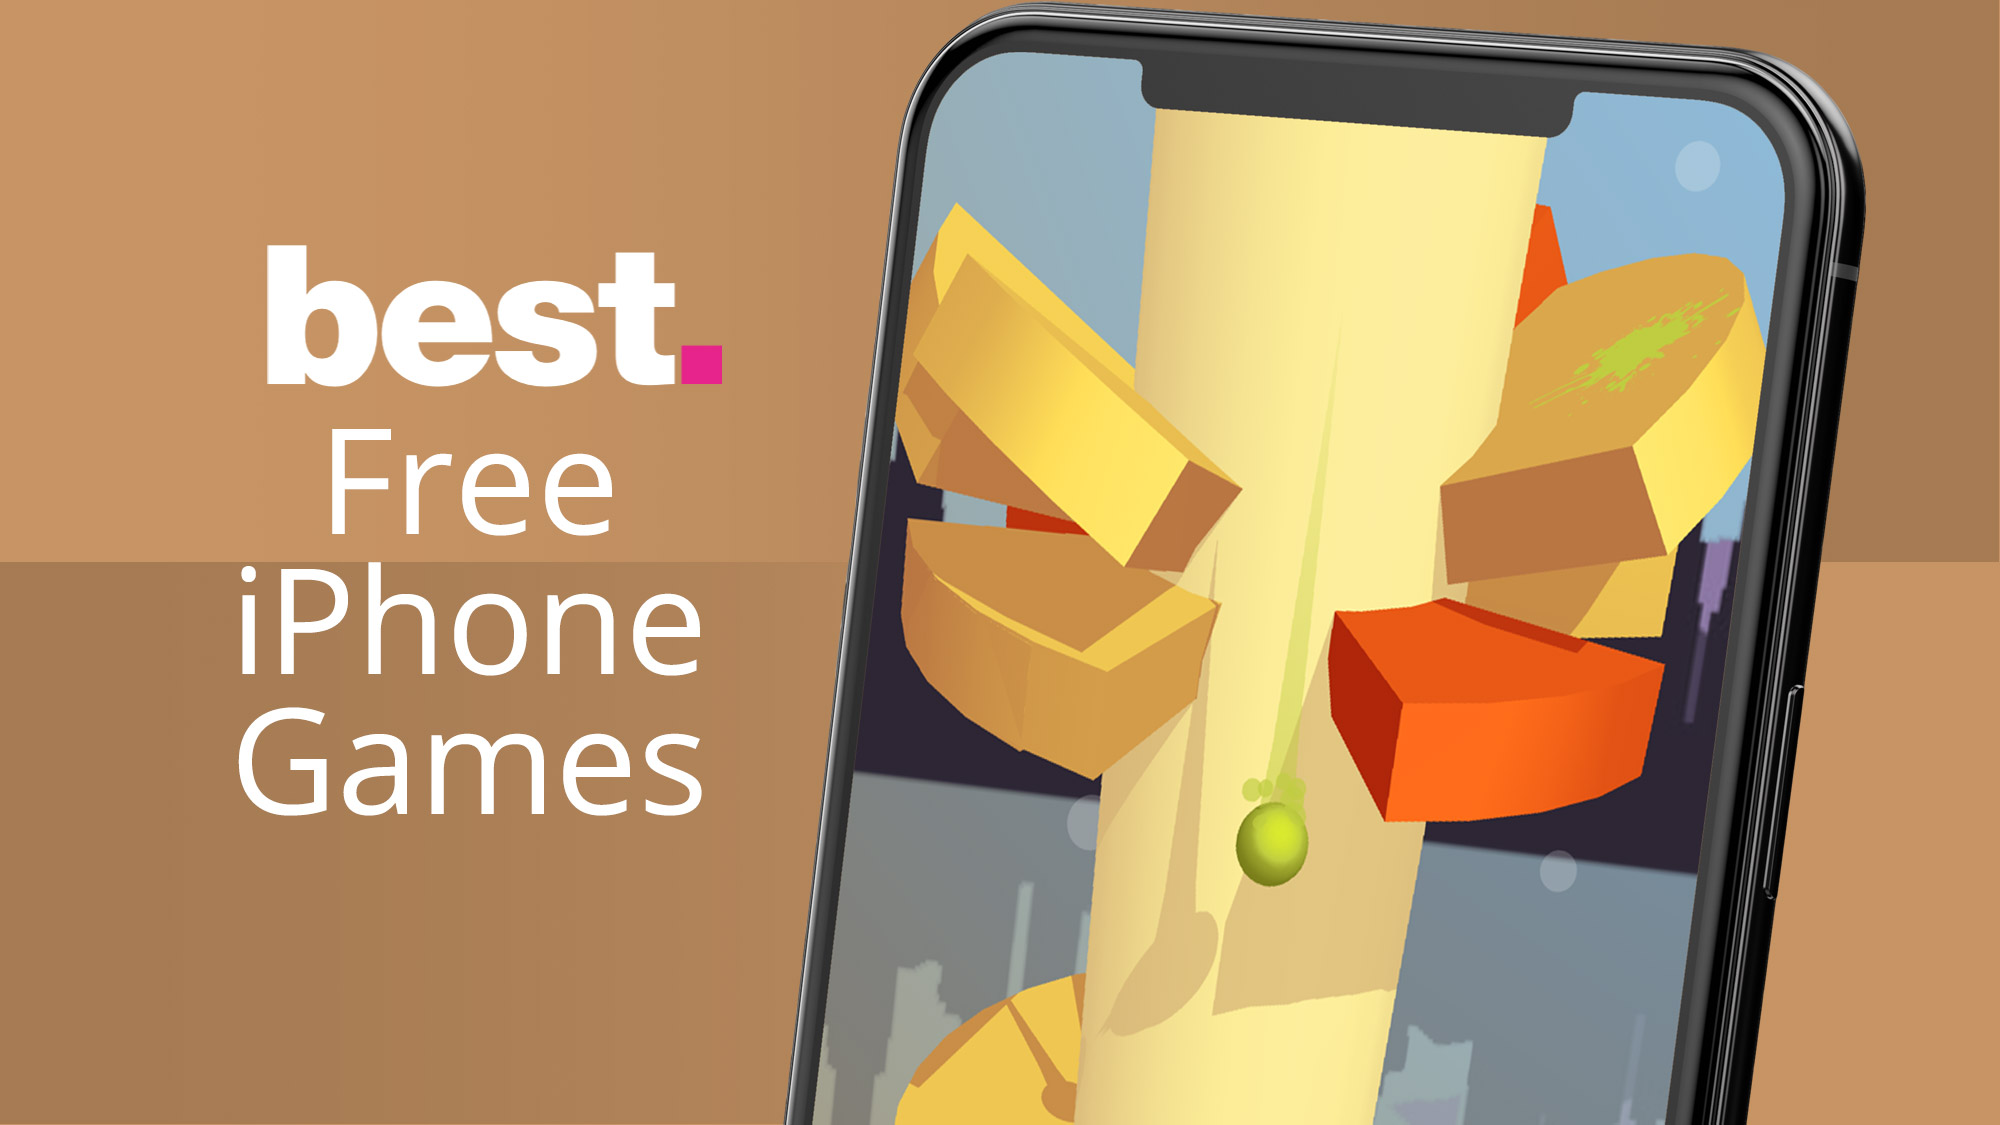 The best free iPhone games of 2020